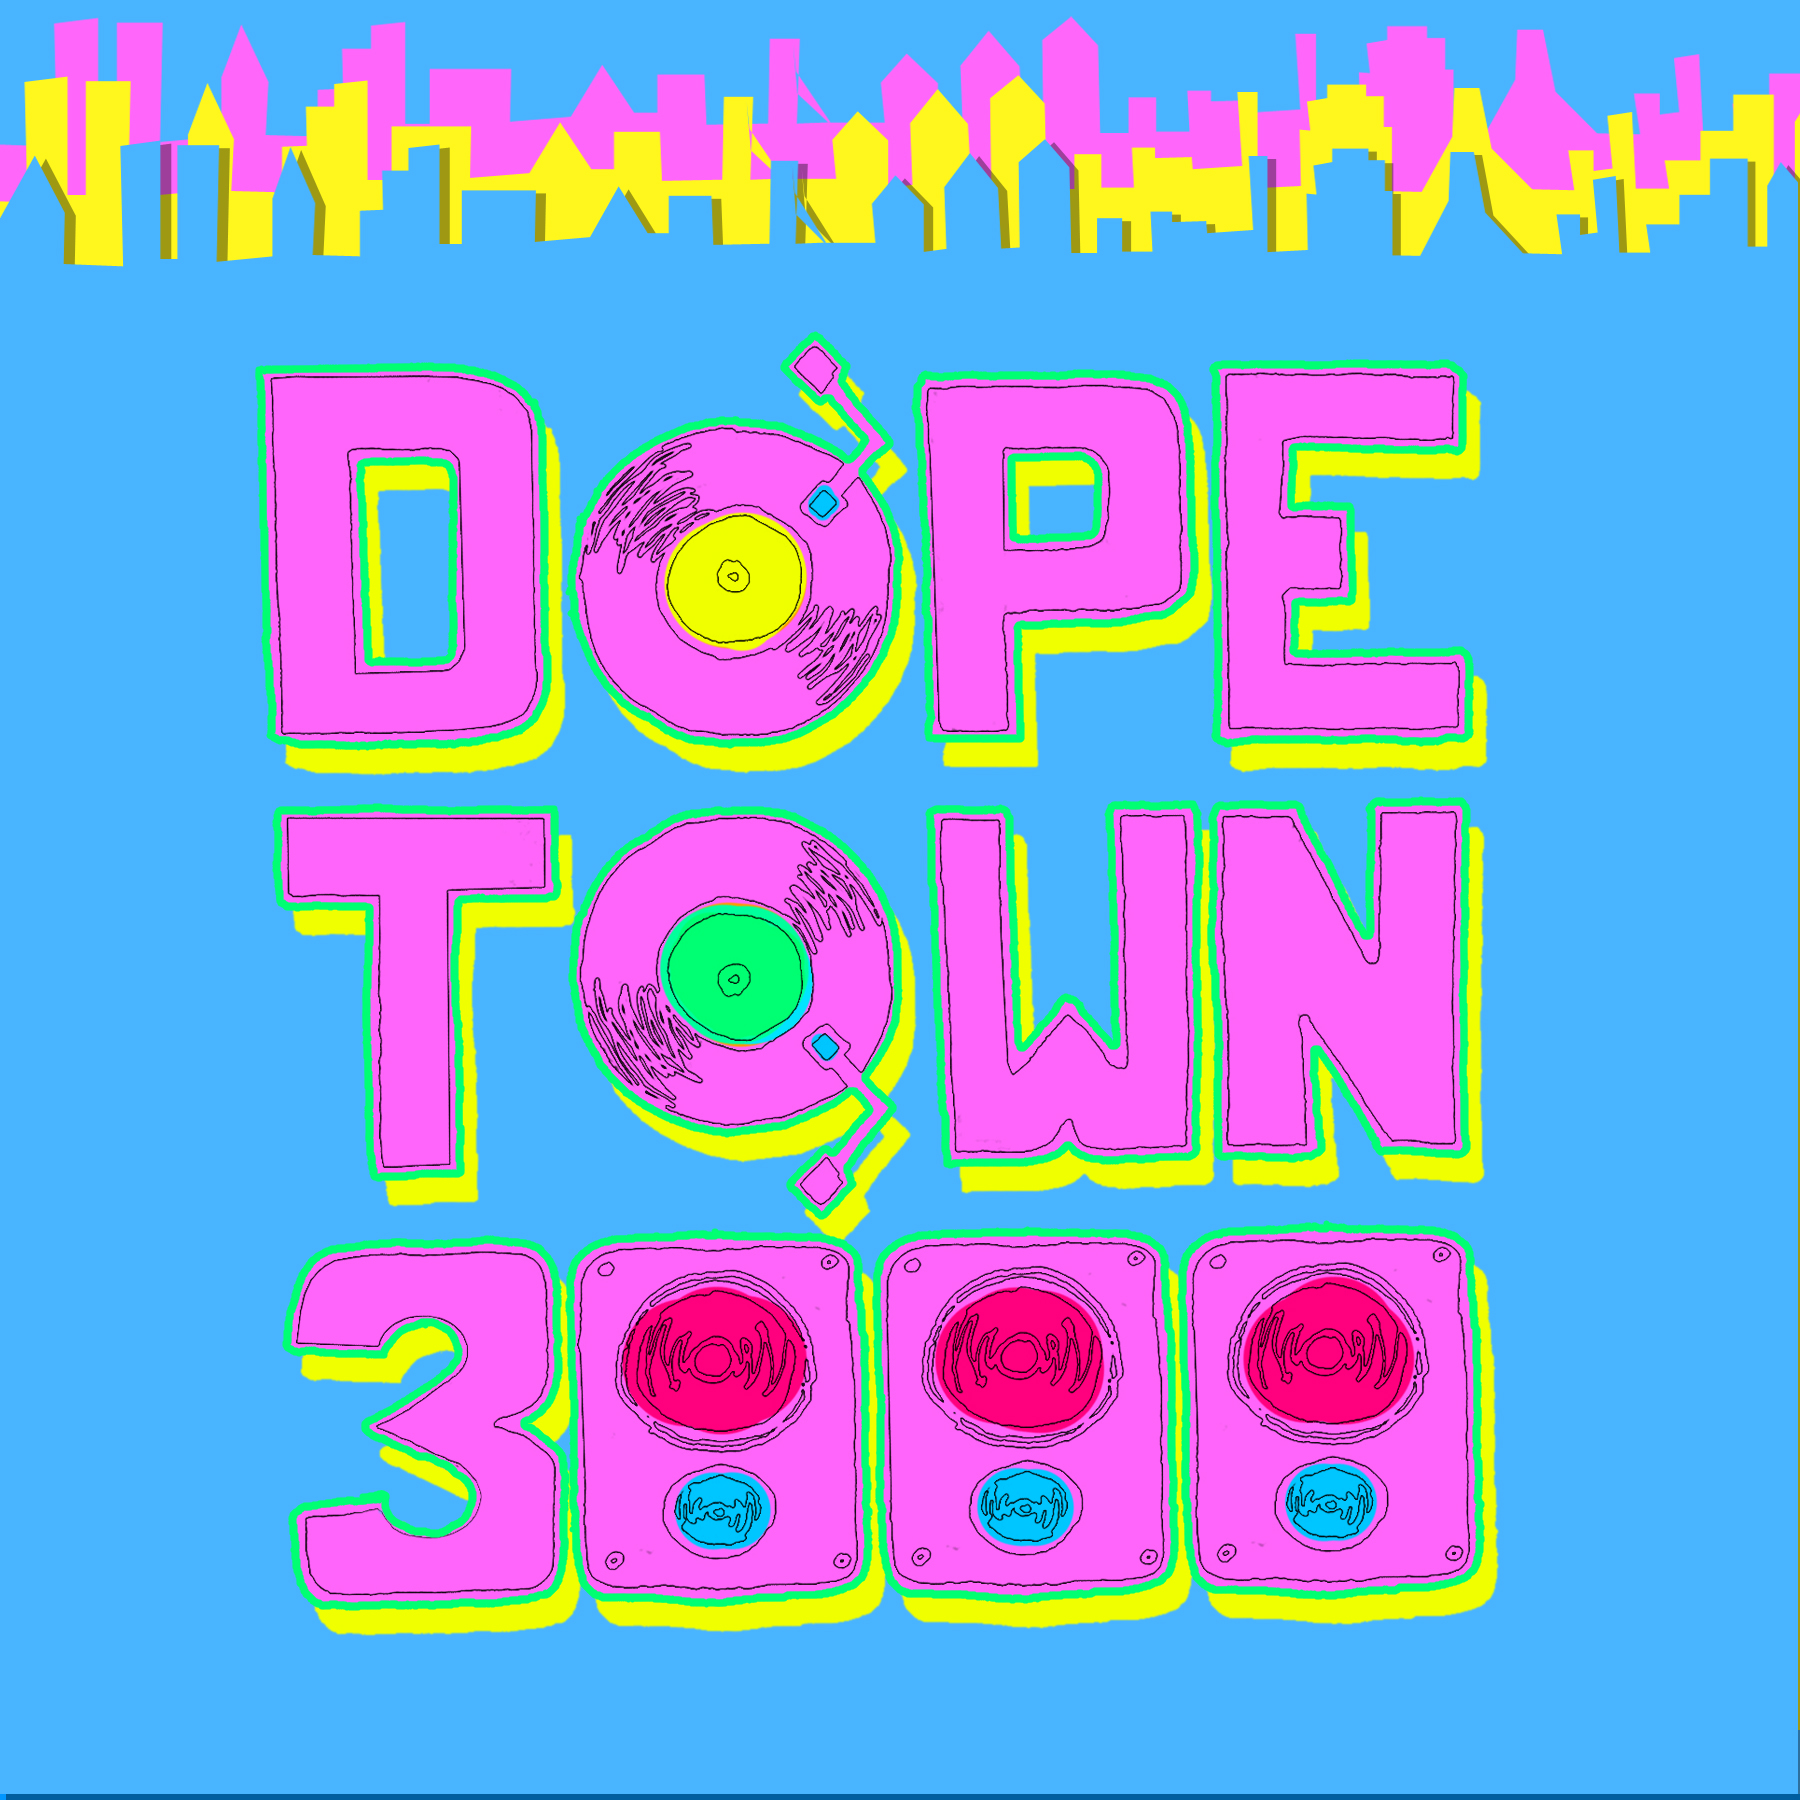 My freestyle hip-hop/improv comedy group  DopeTown 3000 has a podcast  that you should totally listen to! We have guests tell special stories and then turn them into improvised hip-hop musicals.  The AV Club  and  Vulture  have written us up! Subscribe today, why don'tcha?